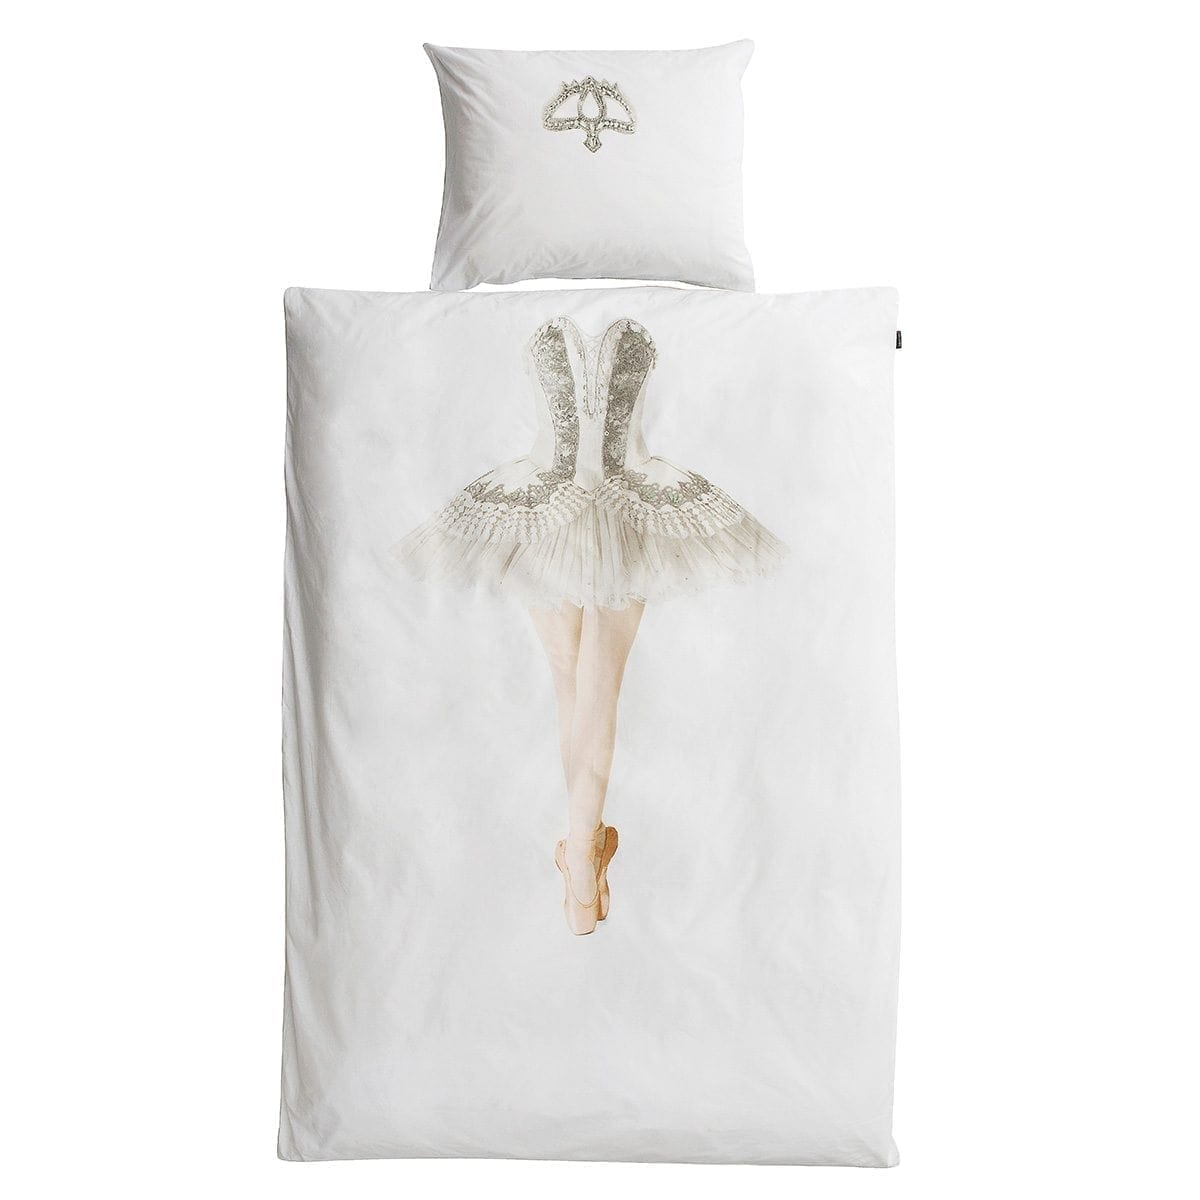 Ballerina Quilt Cover Set